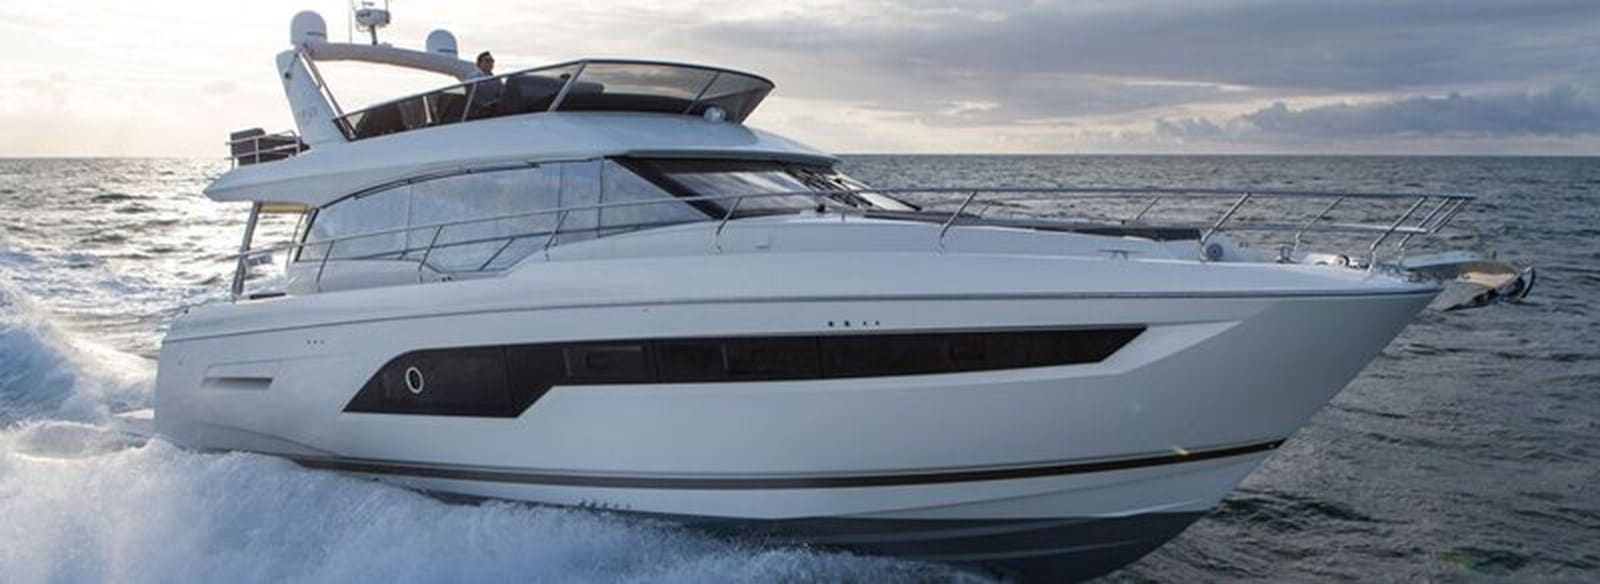 new prestige 630 yacht for sale